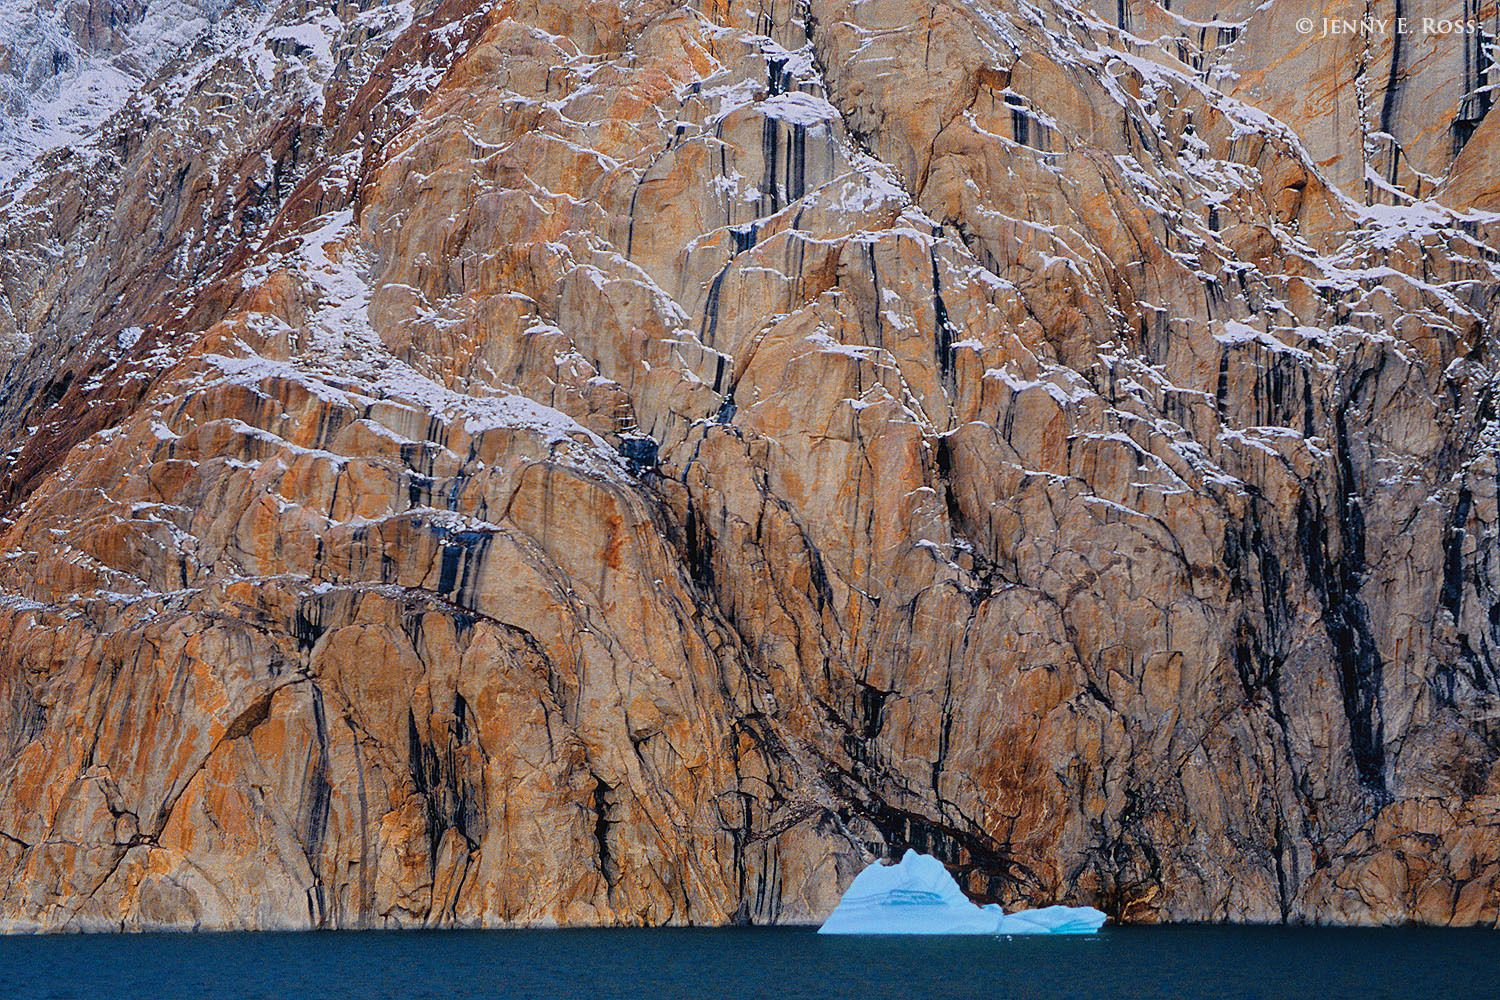 Iceberg, and cliffs adorned with desert varnish and a dusting of snow, in Ofjord within Scoresby Sund, East Greenland.